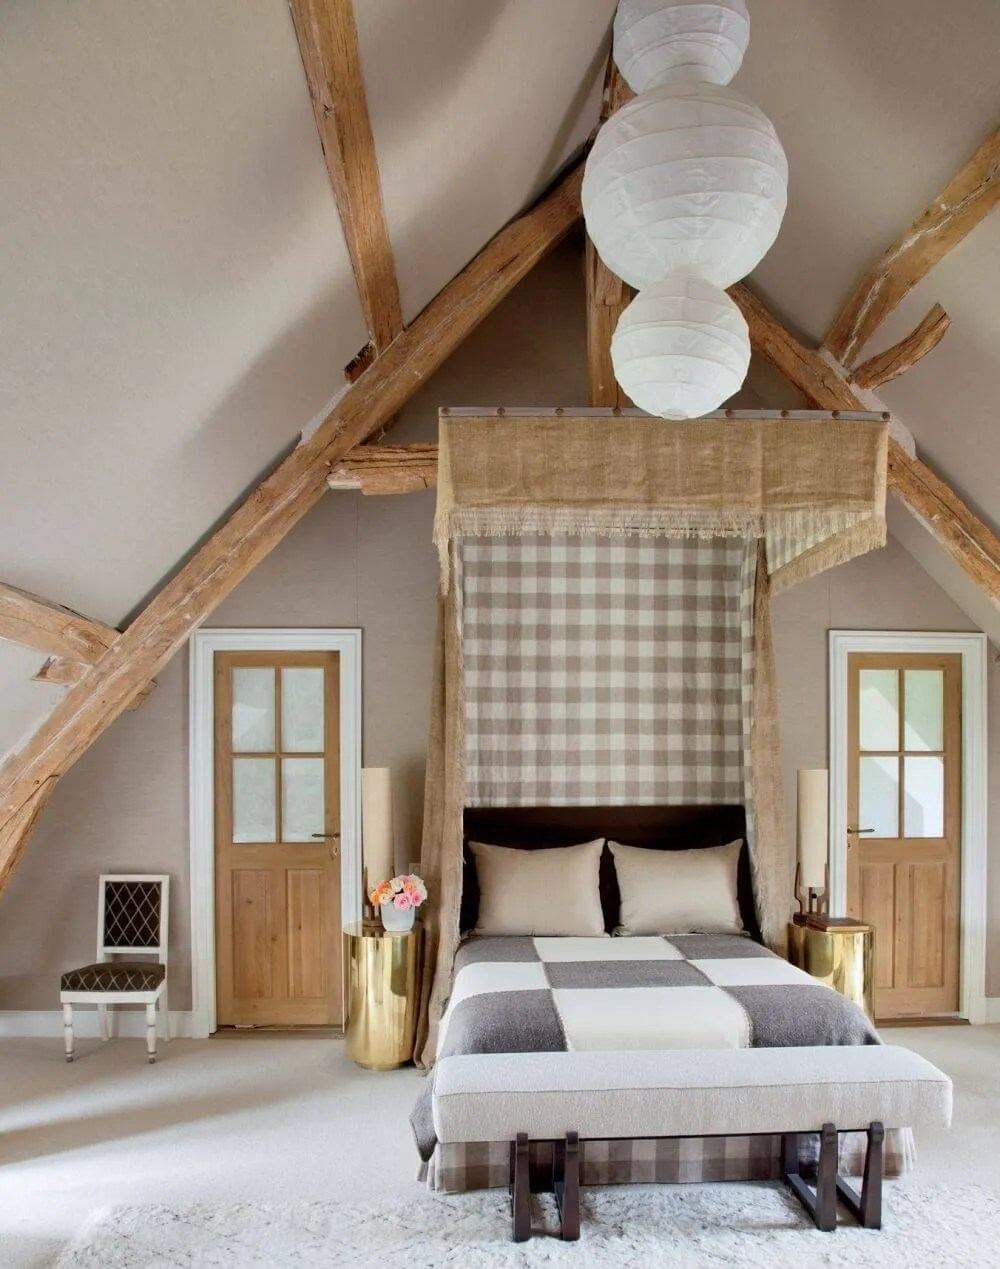 8 farmhouse inspired bedroom designs - https://interioridea/